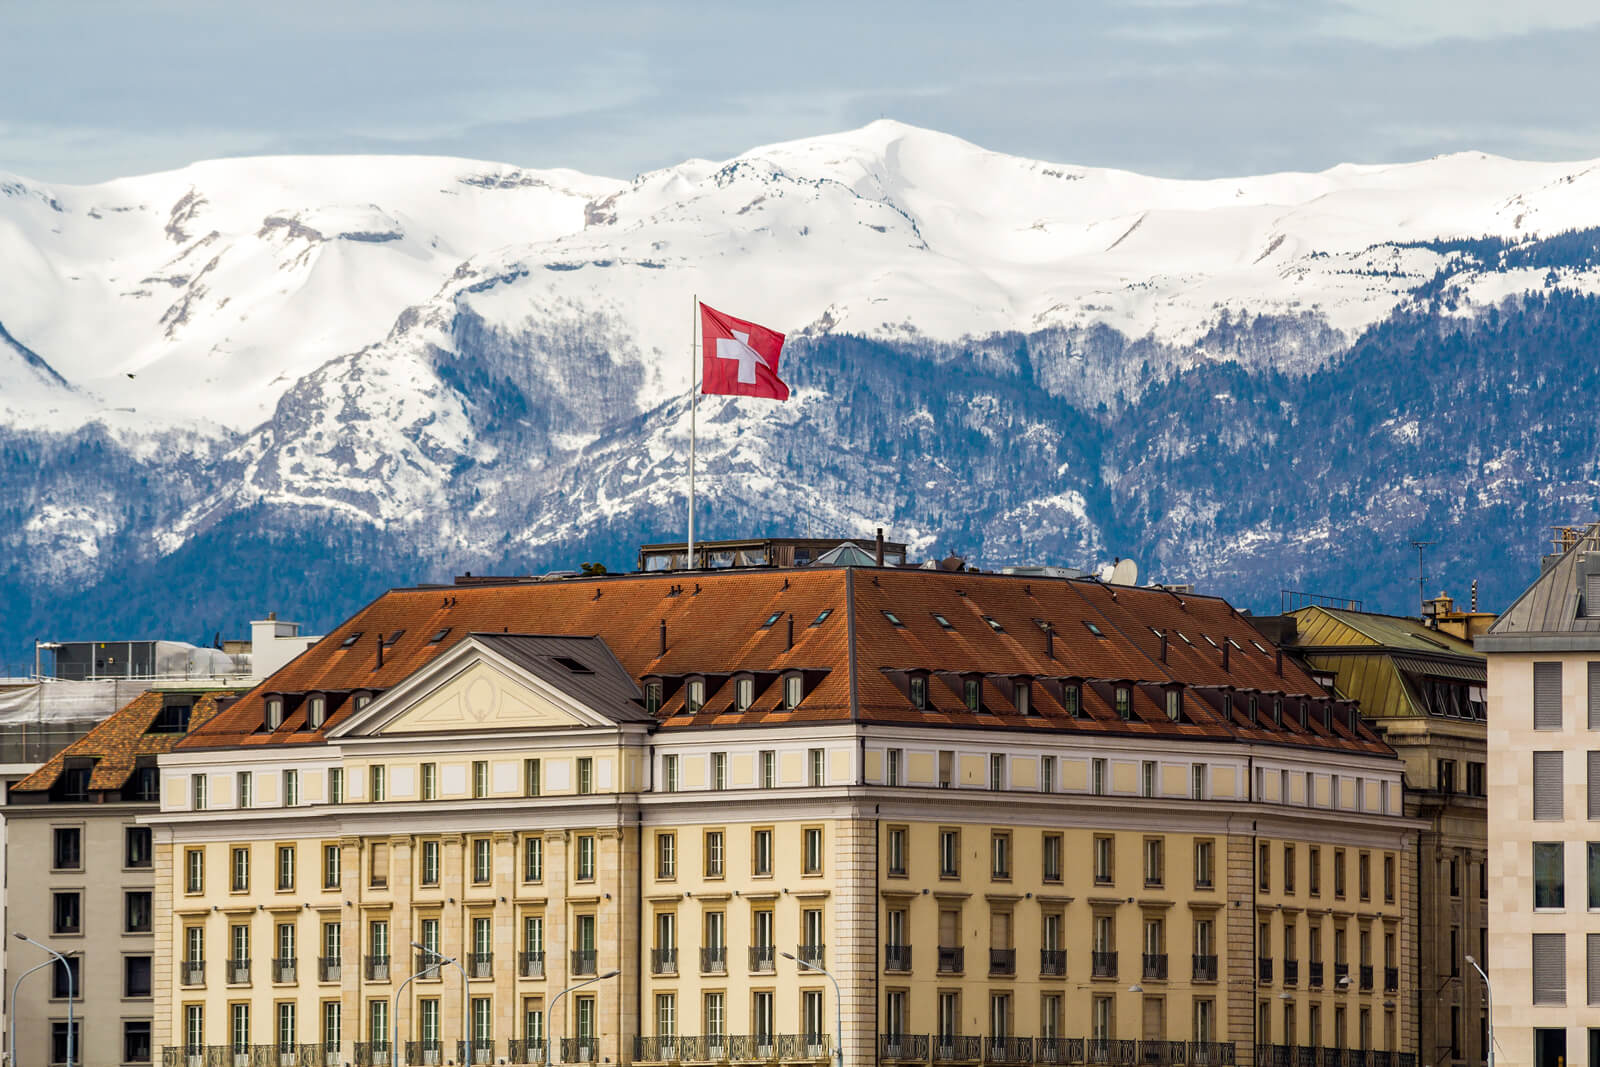 The Geneva City Scape with Snow-Covered Peaks and a Swiss Flag